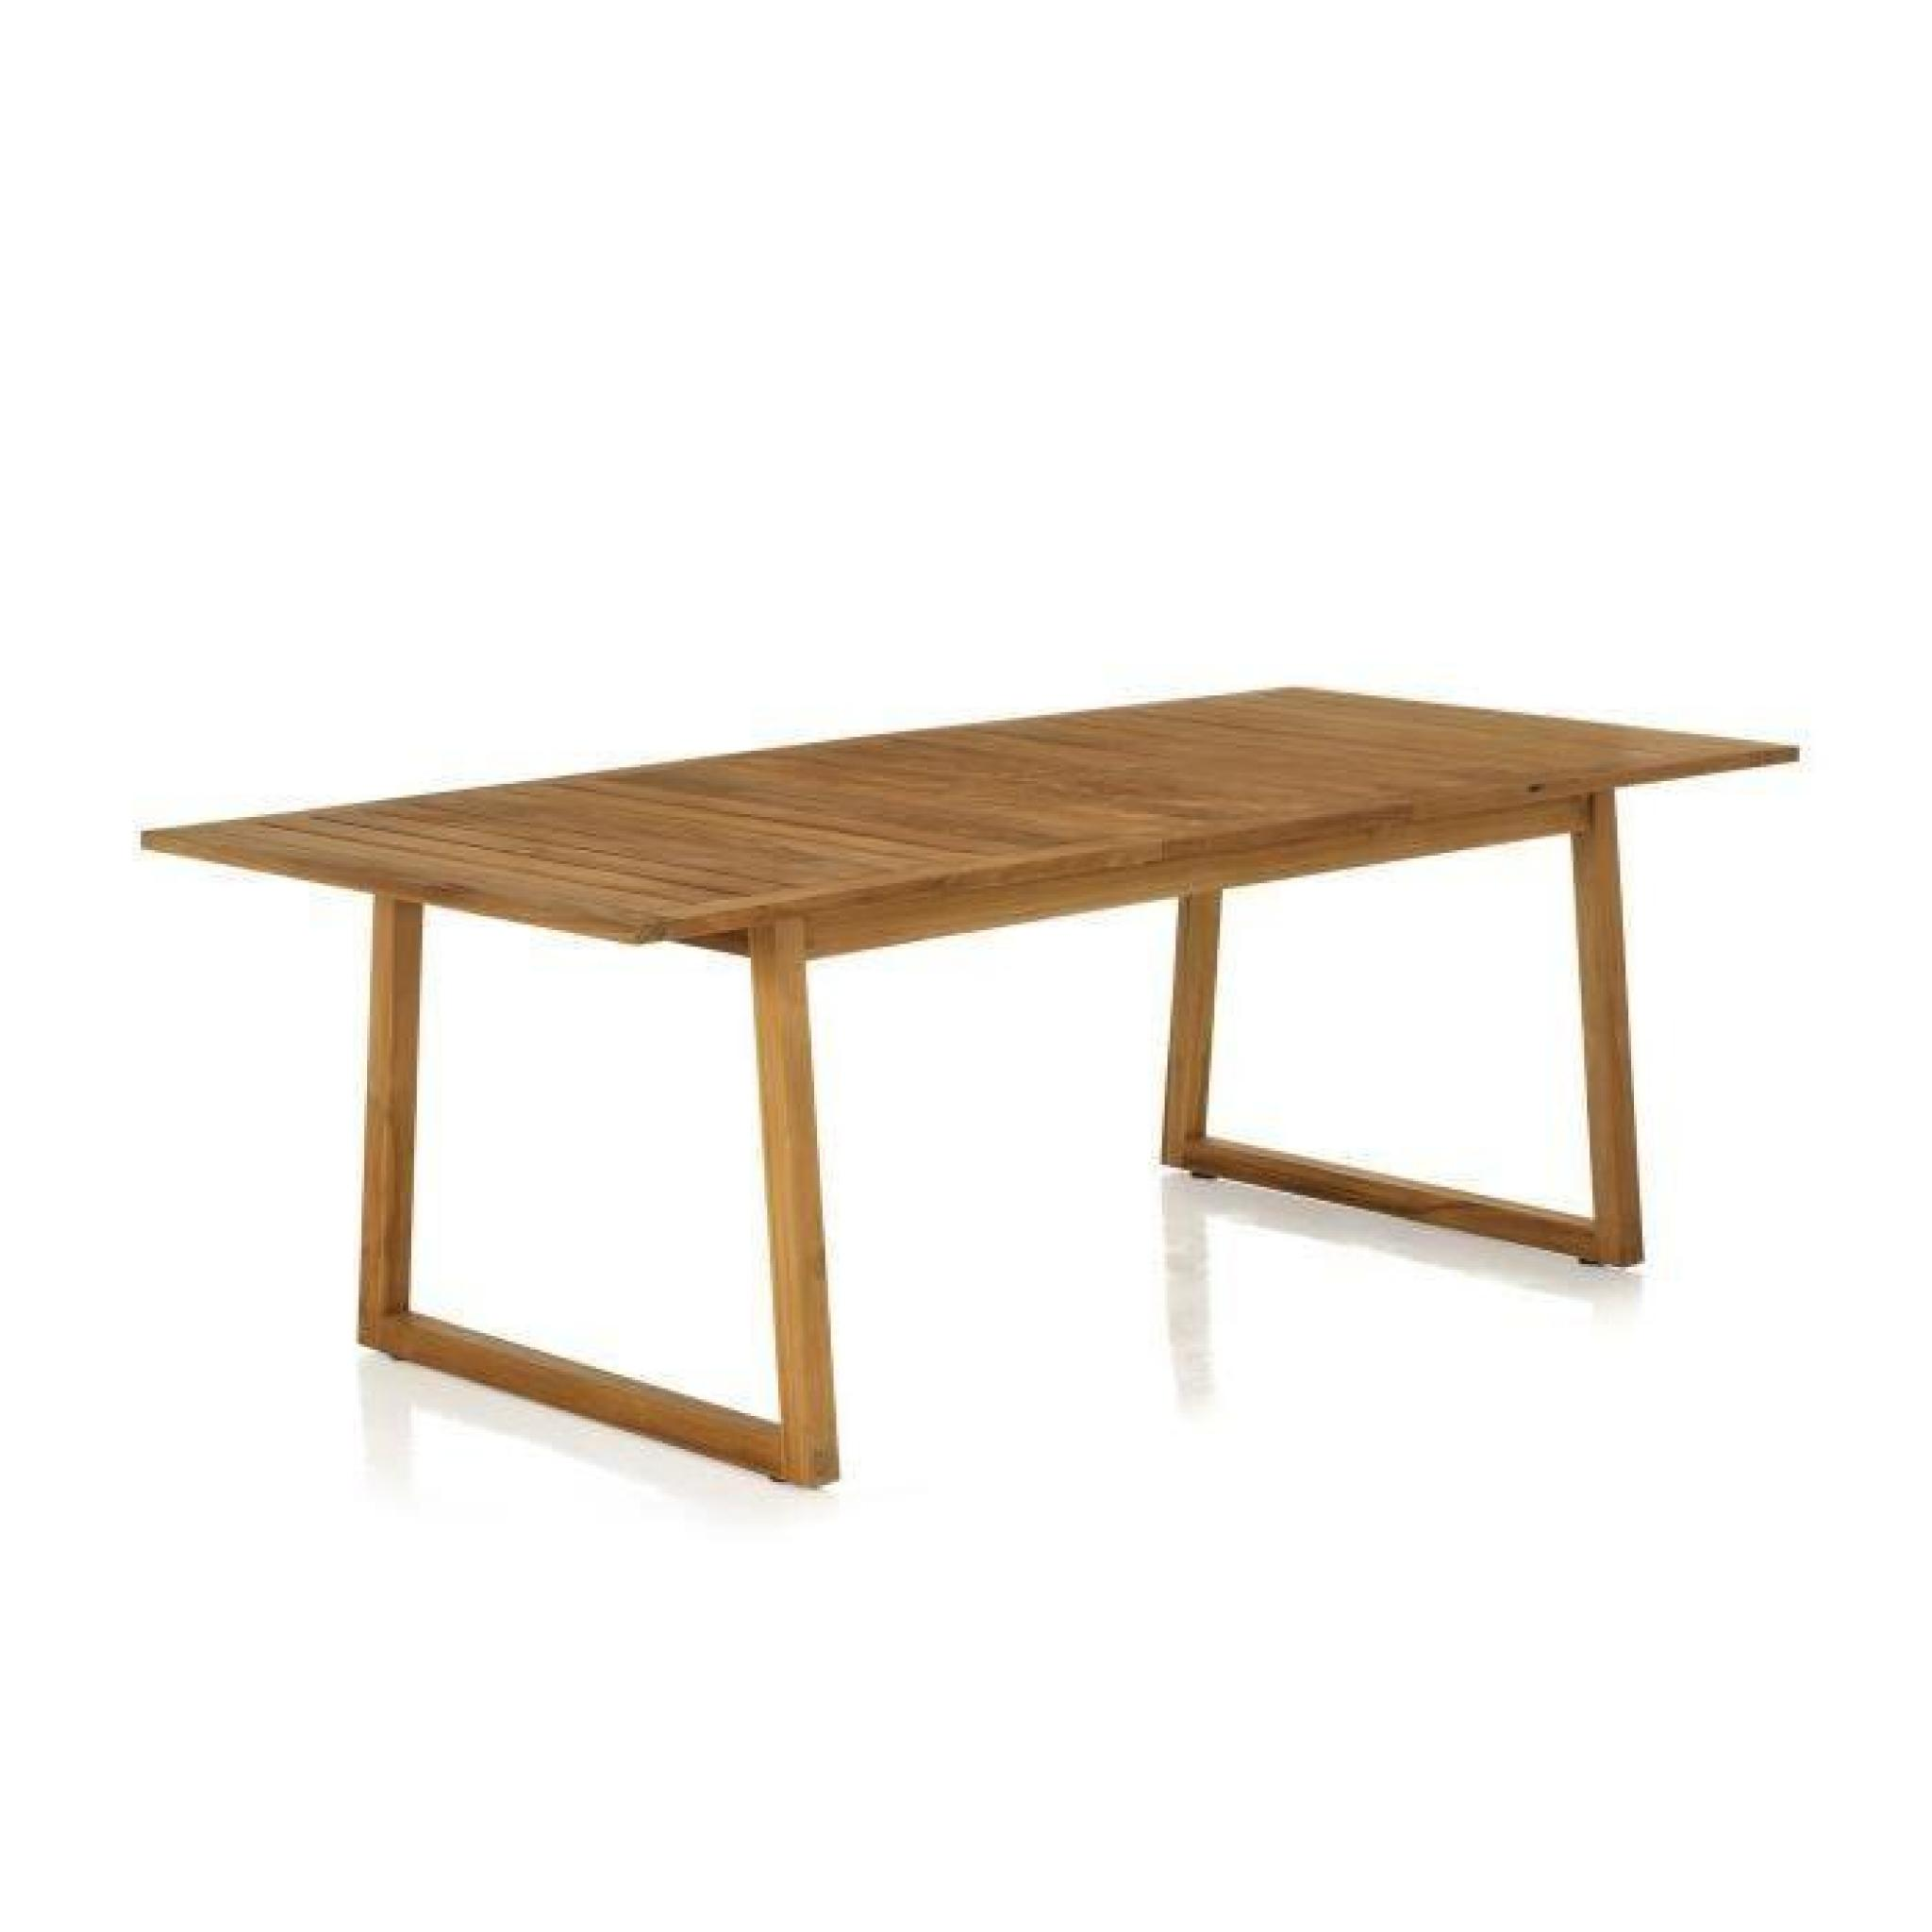 Mia Table De Jardin Rectangulaire En Teck Allonge